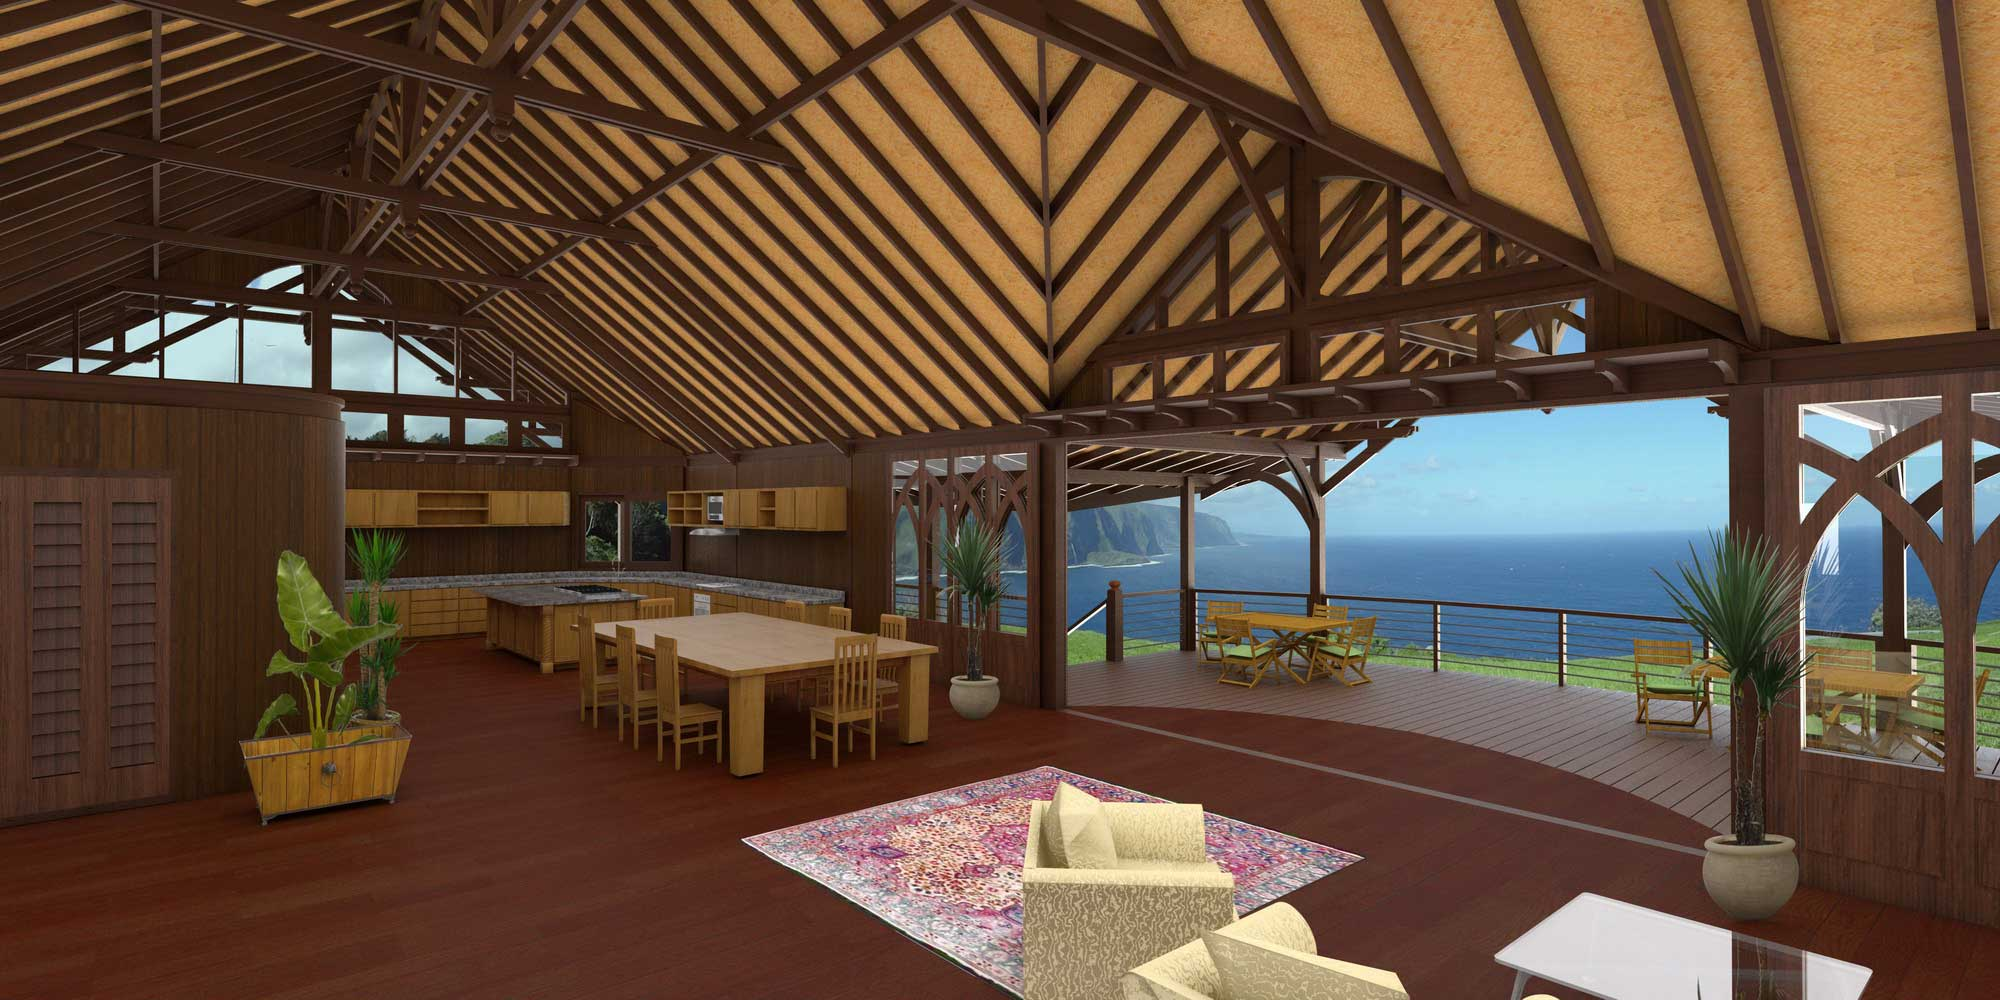 bali style designs plans - Balinese House Designs